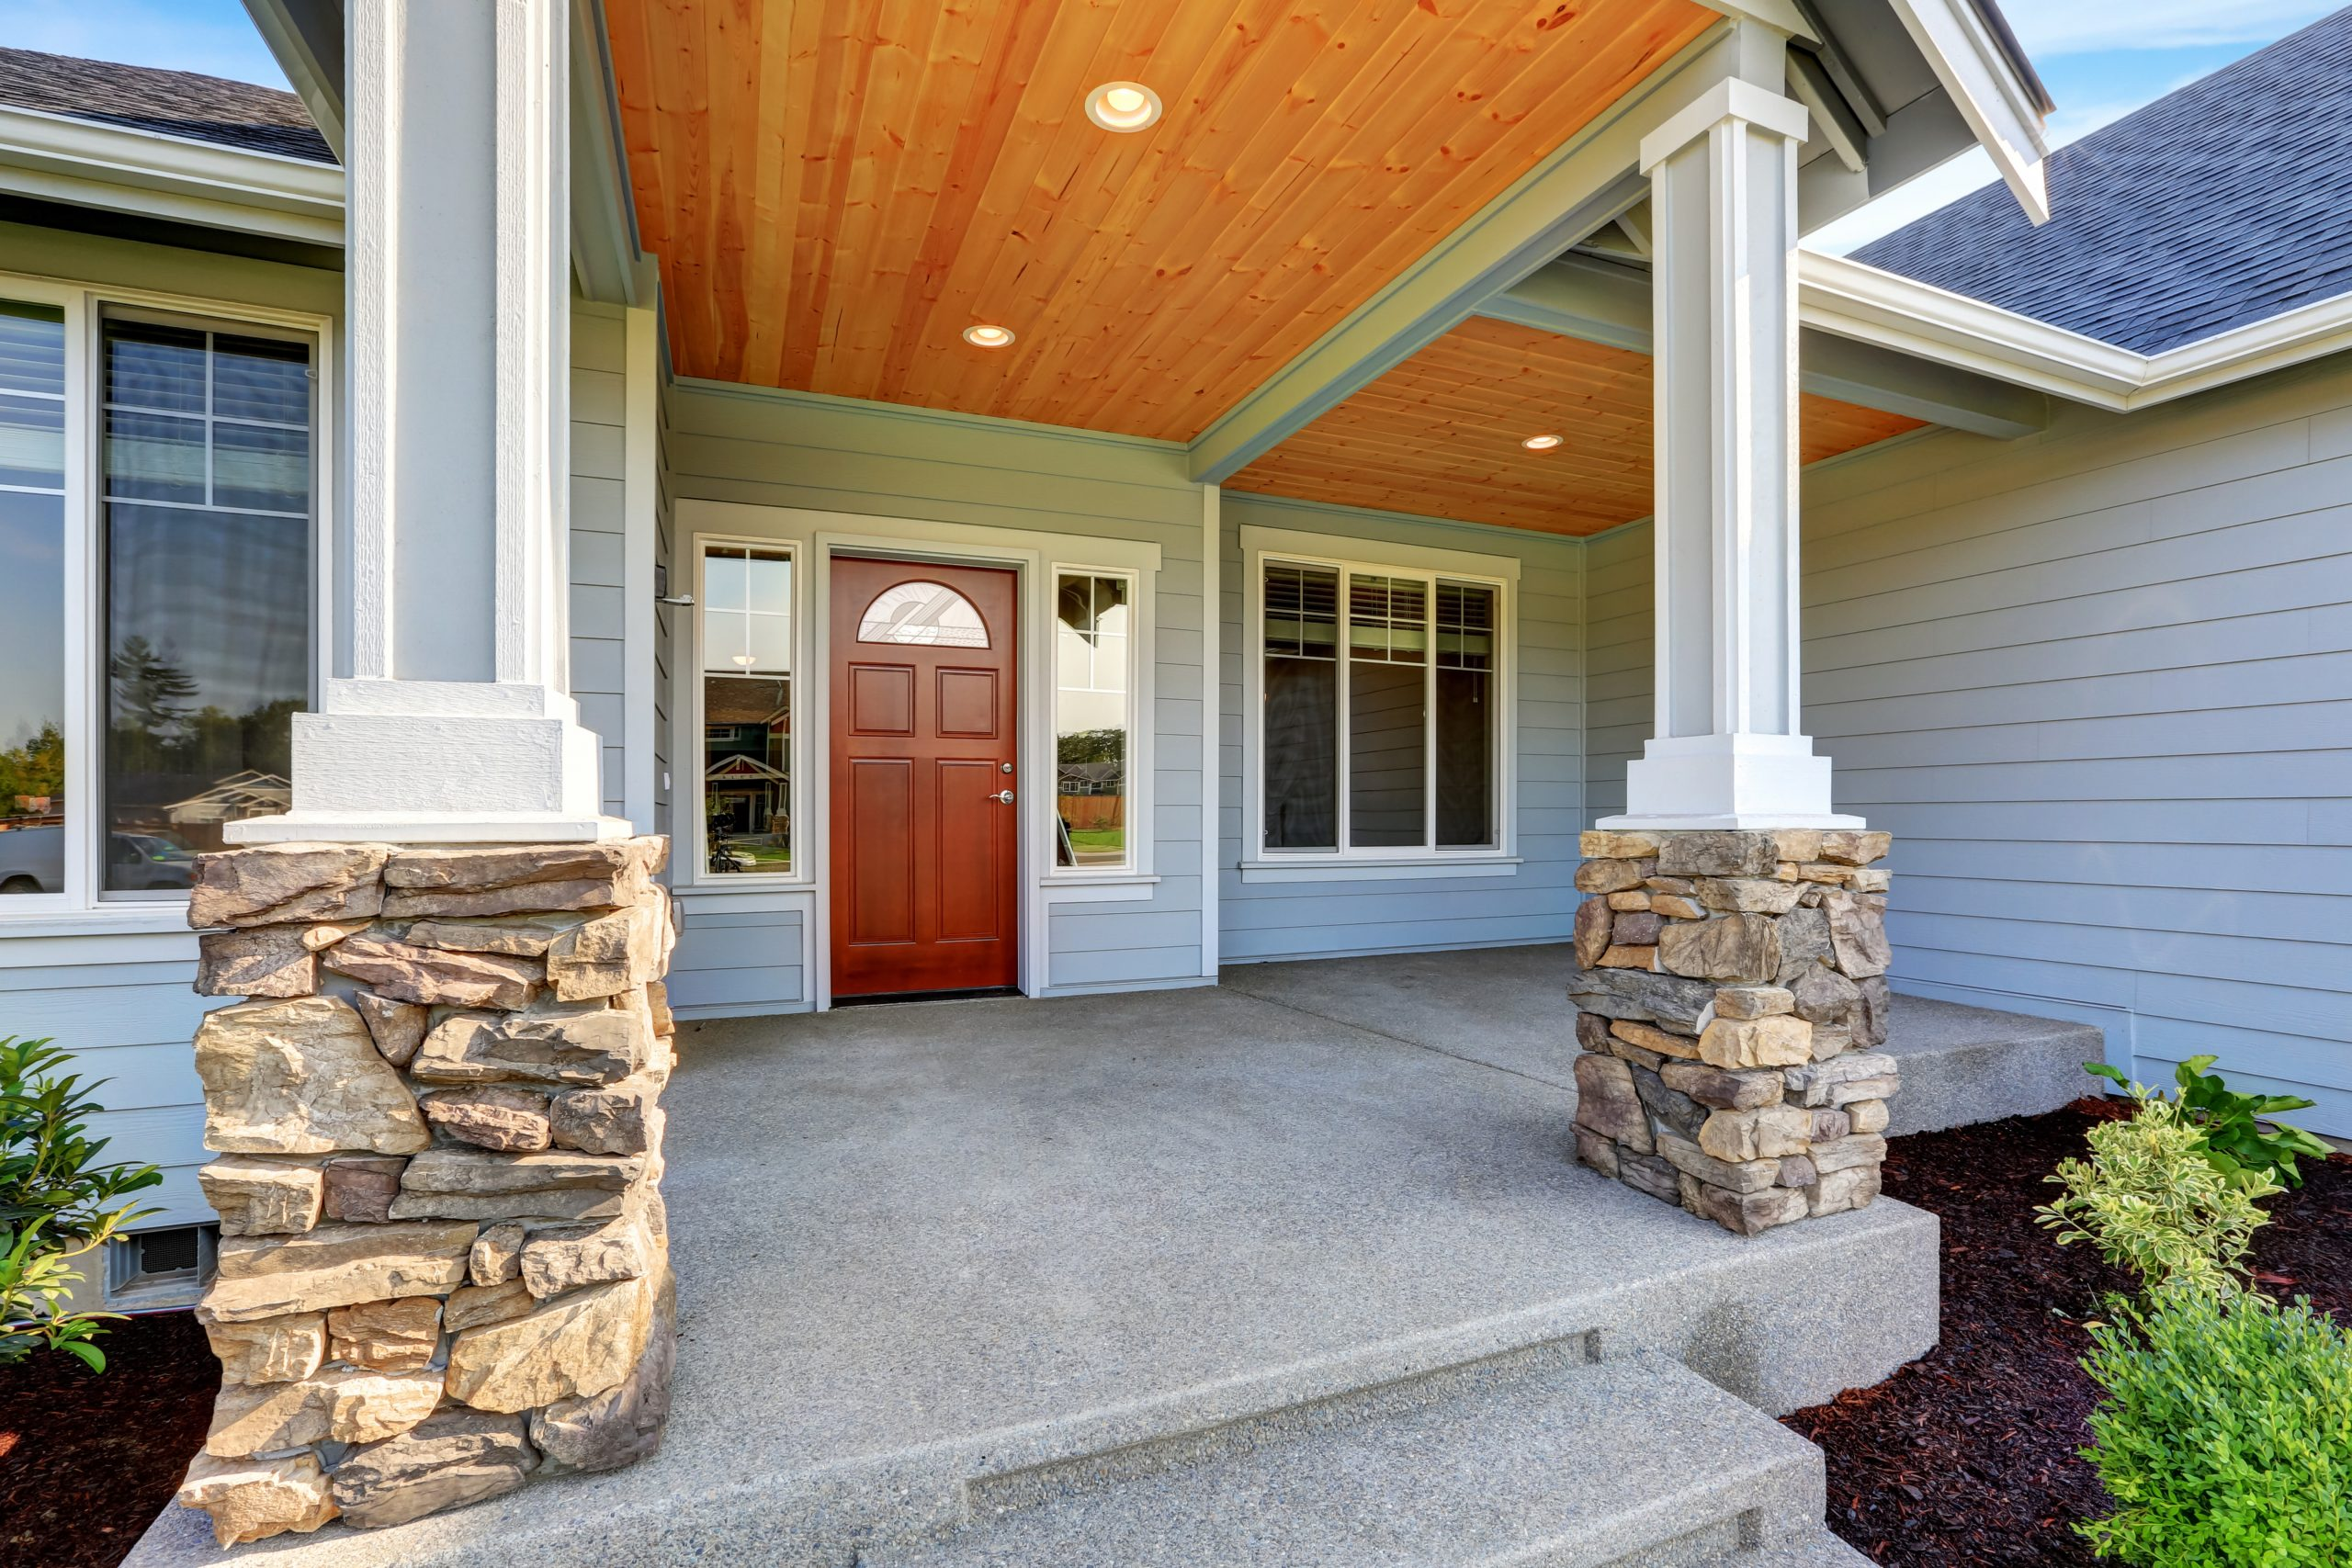 Light blue siding house . Porch with stone base columns.